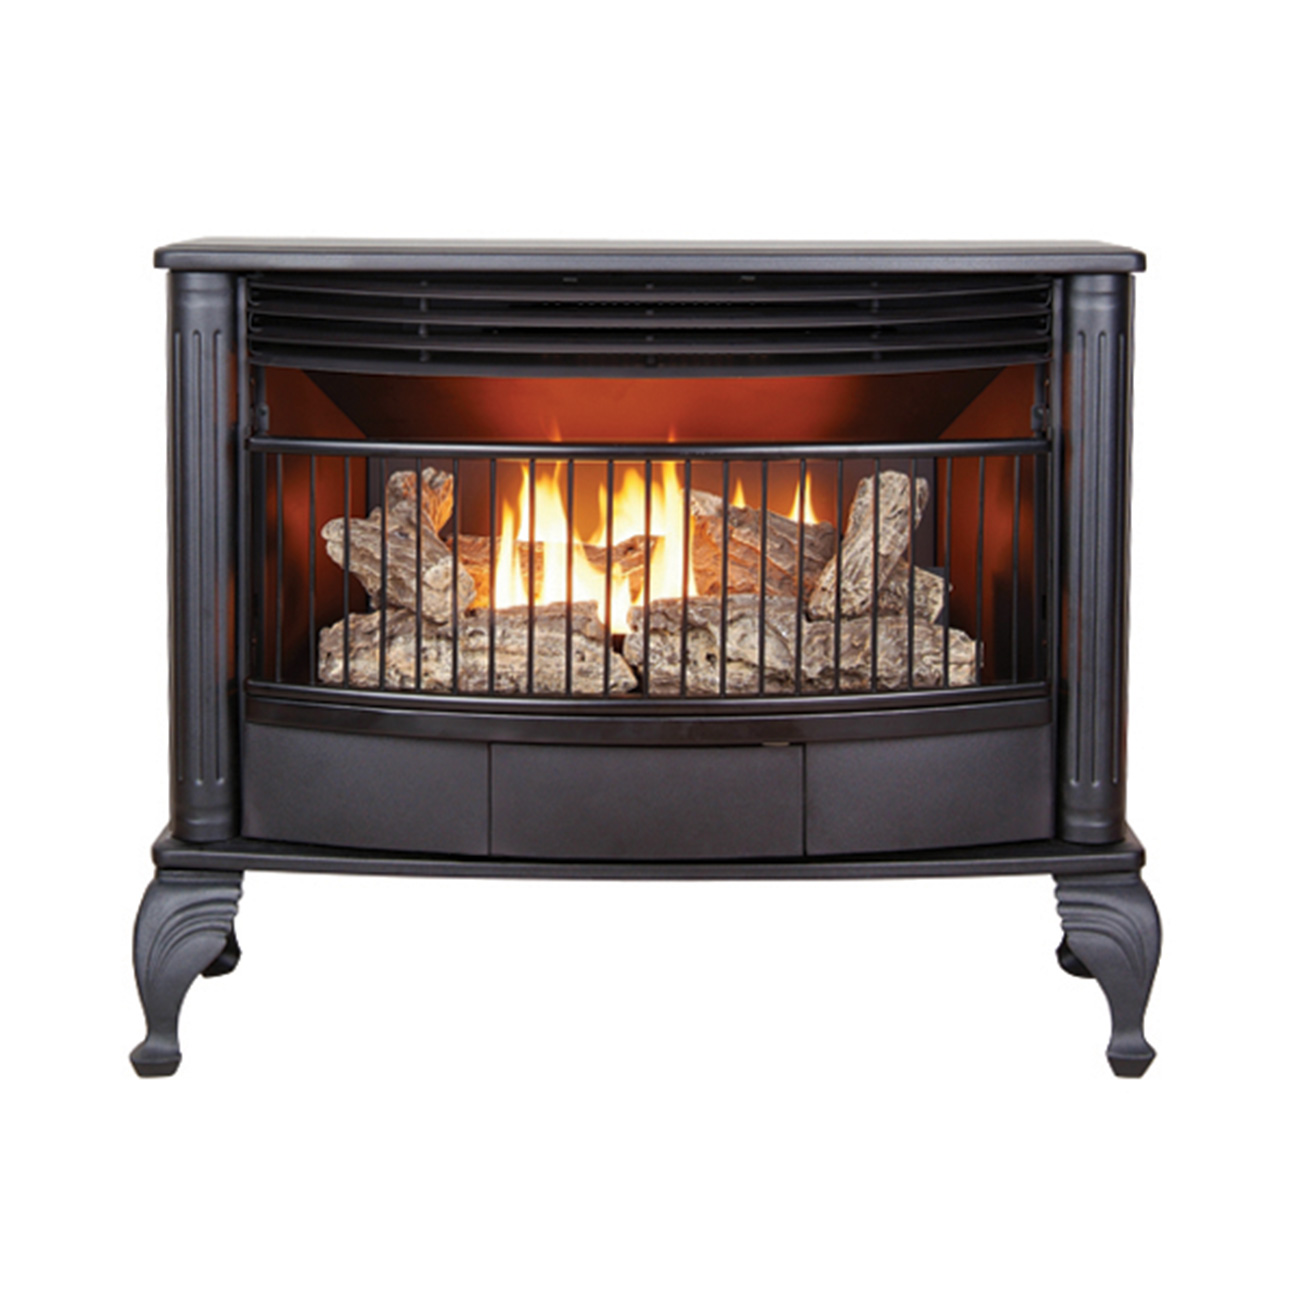 Gas Stove Dual Fuel With Remote Control